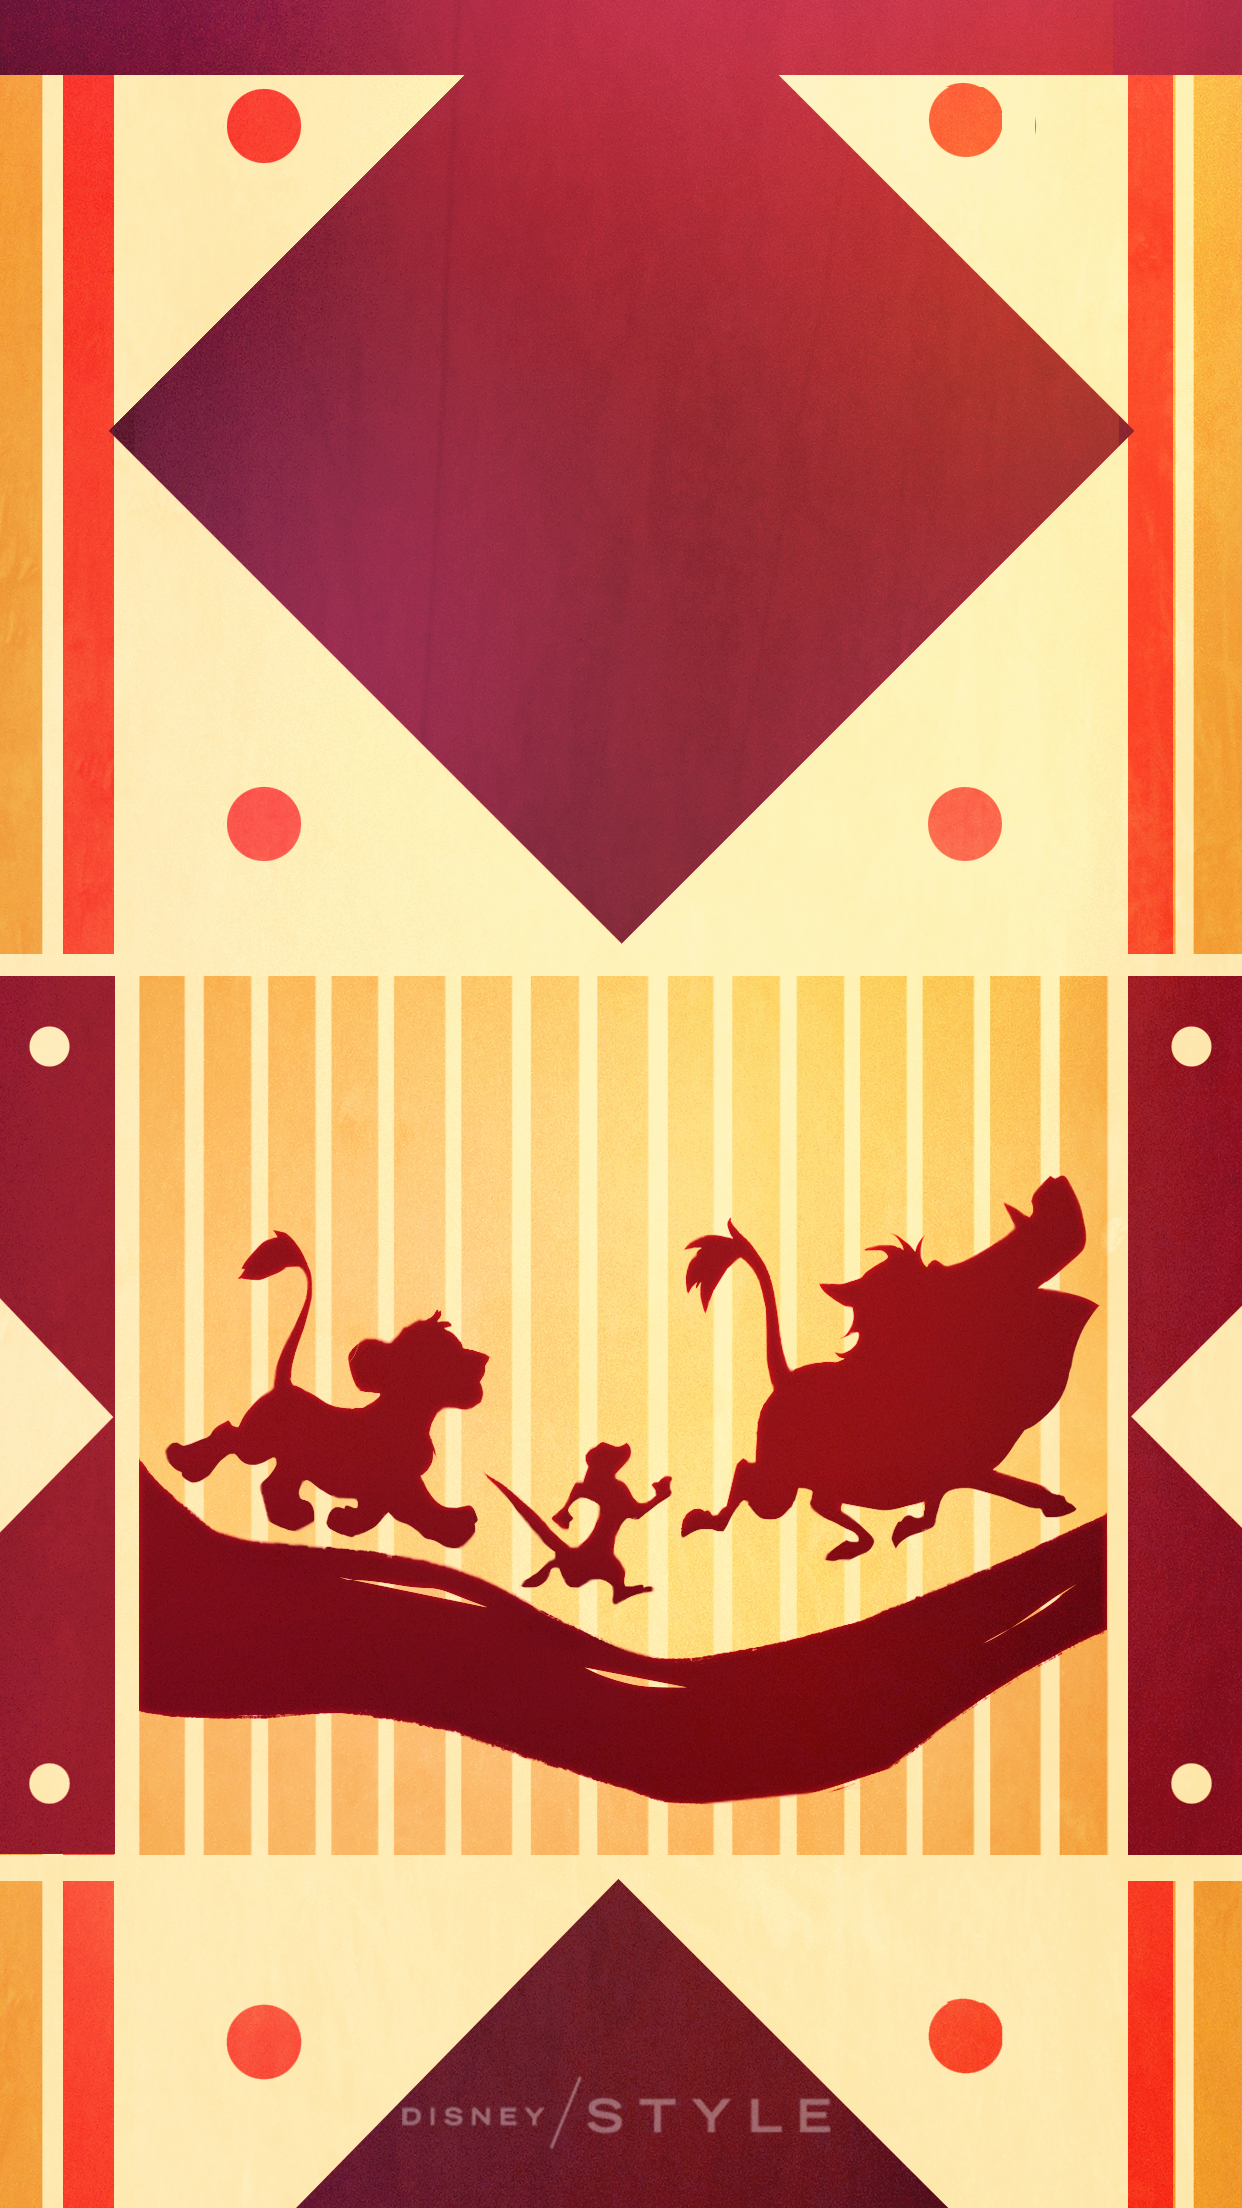 The Lion King Images The Lion King Phone Wallpaper Hd Wallpaper And